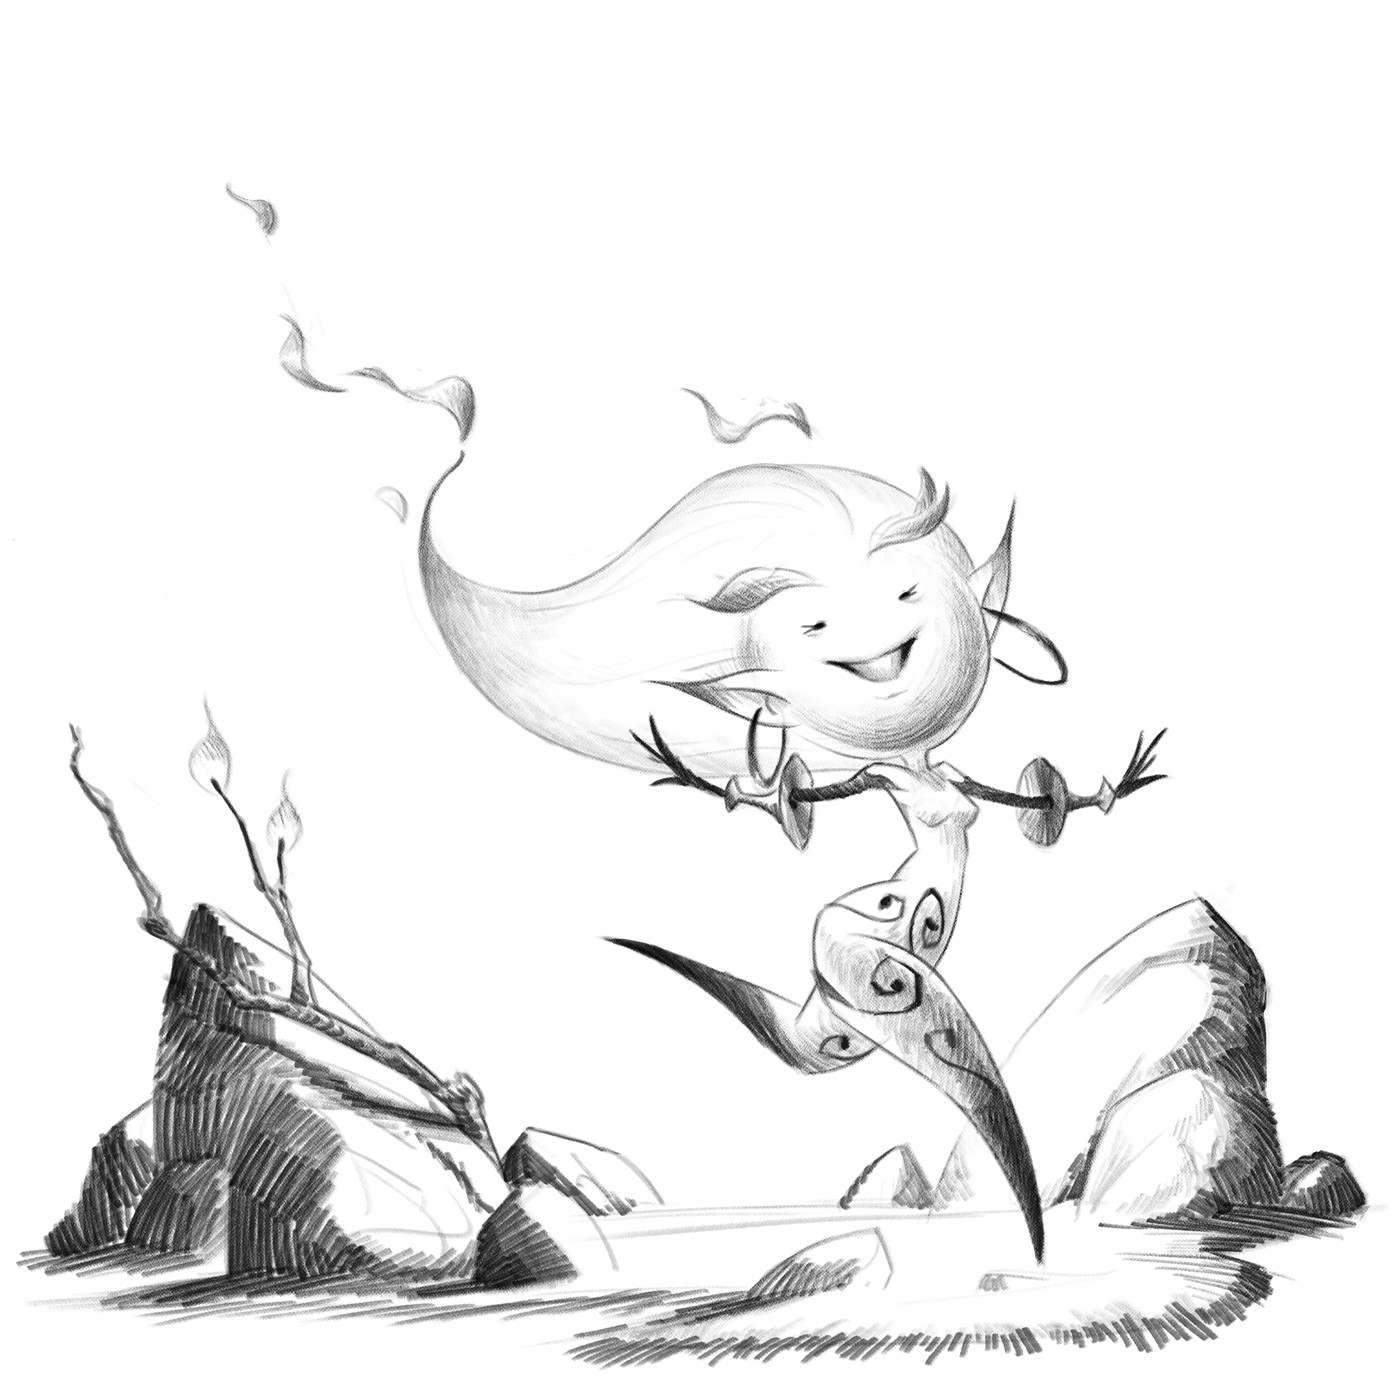 initial drawing for the Dancing Flame